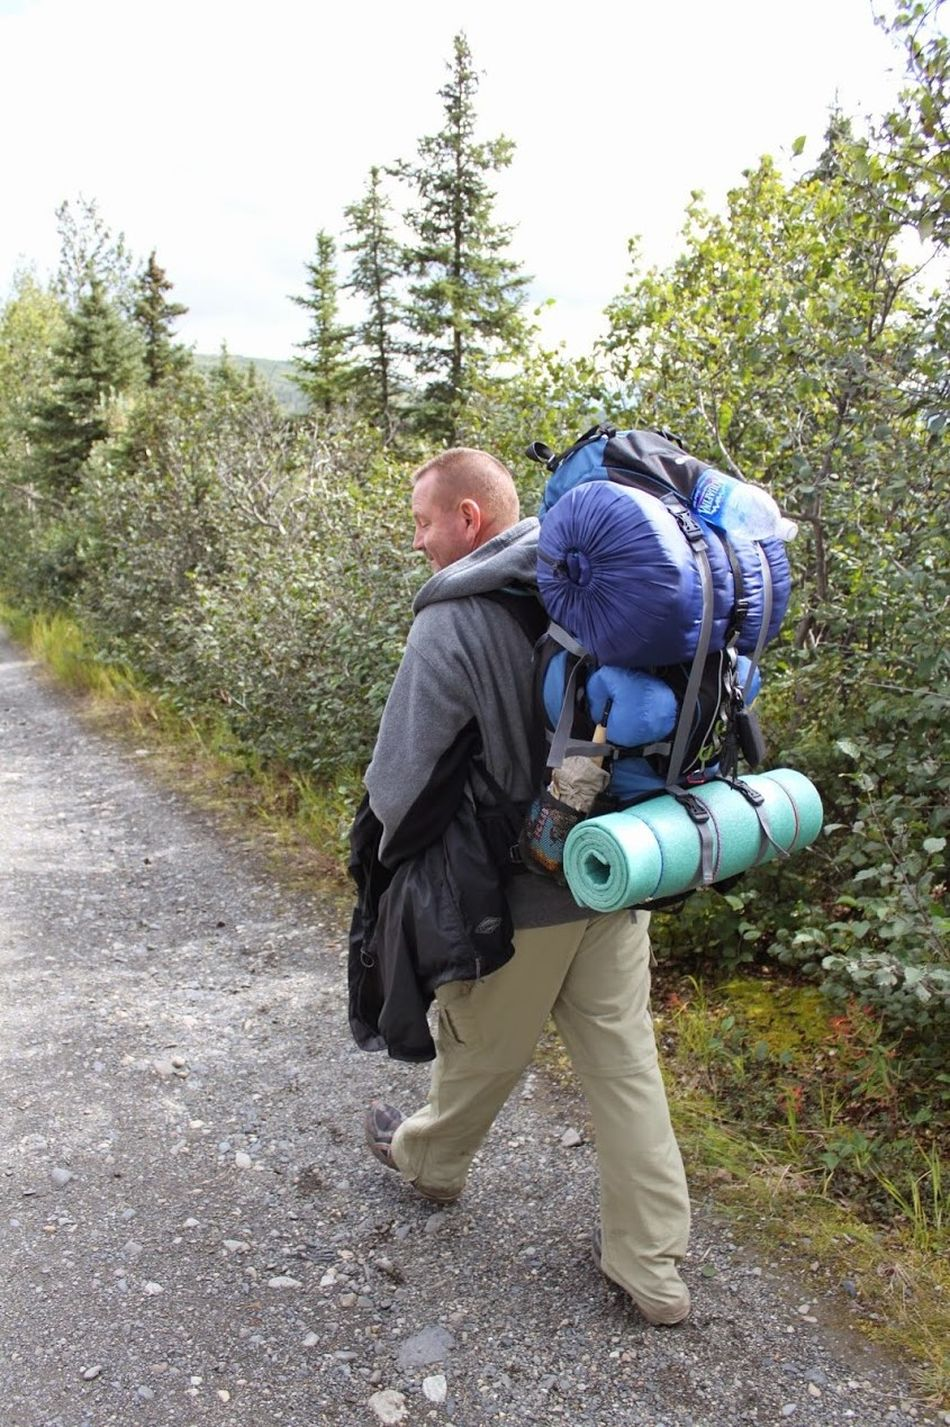 Headed For The Trail Adult Adventure Adventures Alaska Anchorage Anchorage Alaska Back Pack Adventure Back Pack Gear Back Packer Back Packing Camper Camping Day Hiking Hiking Trail Mature Adult Men Nature Oakstrails Photos Outdoors Tent Camper Trail Hiking Tree Walking Wet